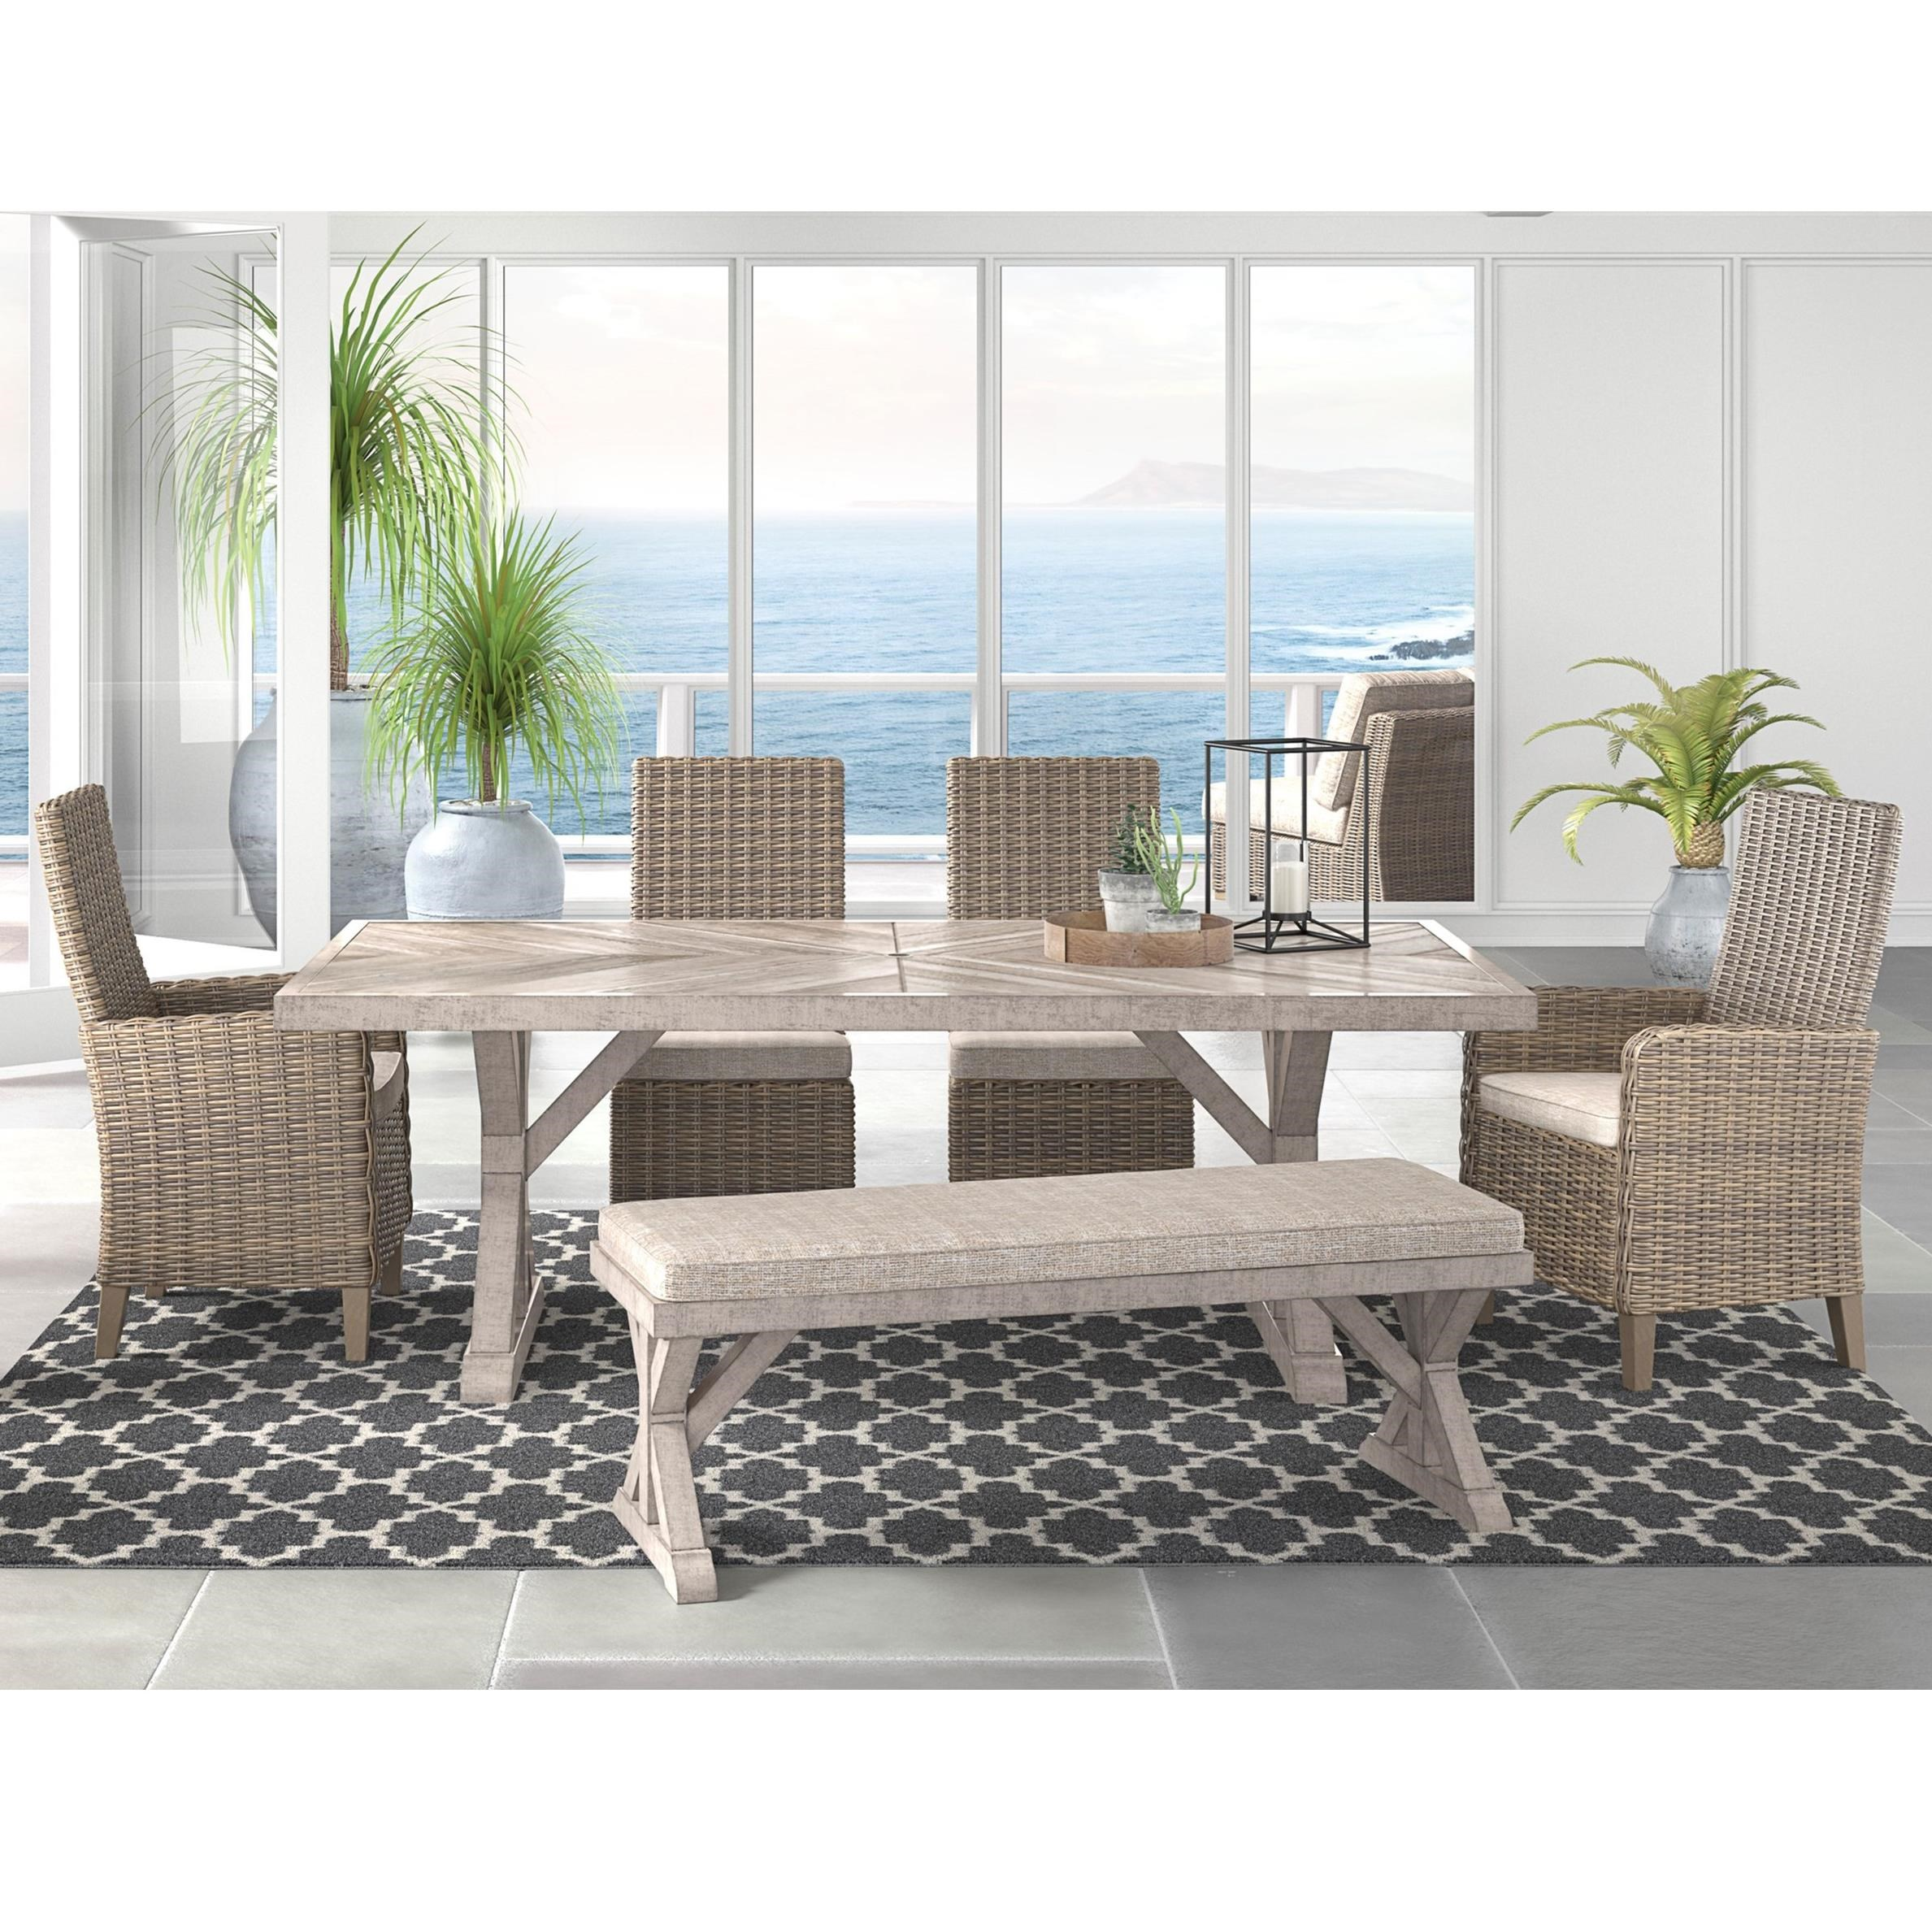 Ashley (Signature Design) Beachcroft 6 Piece Outdoor Dining Set - Item Number: P791-625+600+601+601A